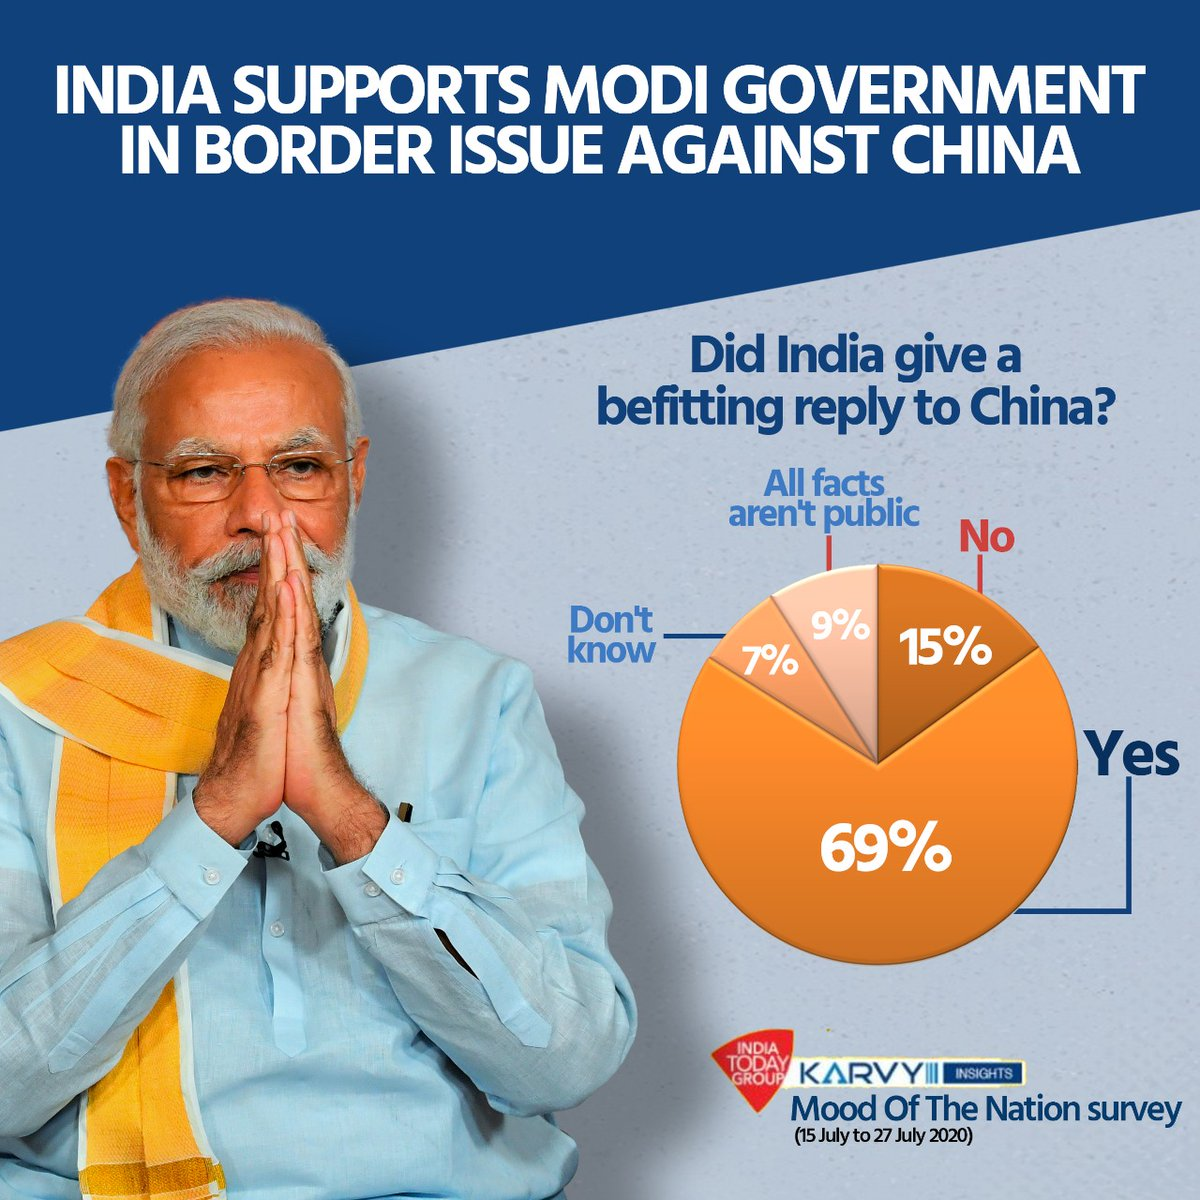 India supports Modi government in border issue against China.